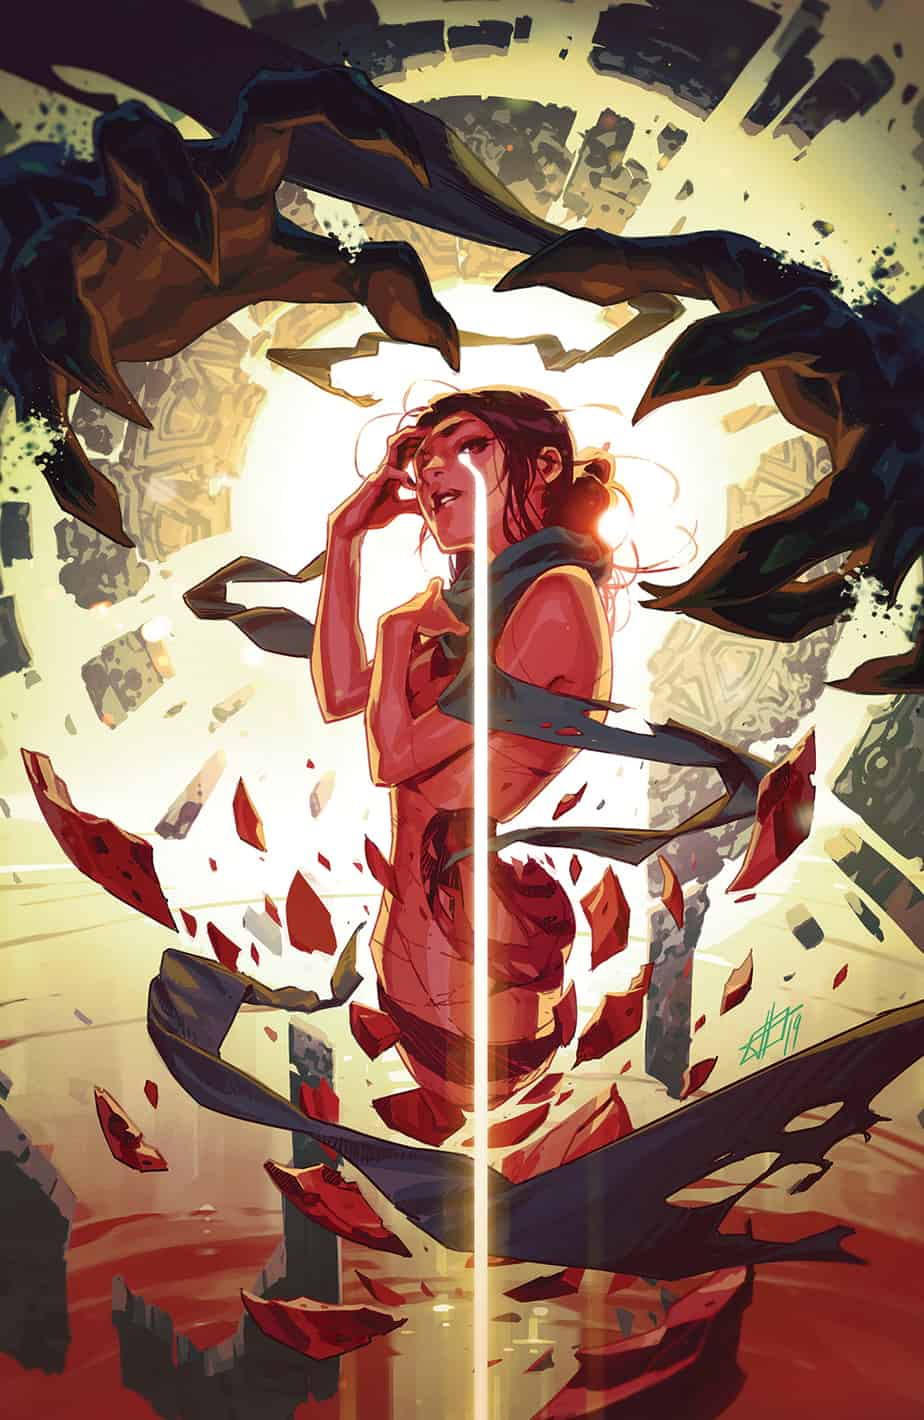 THE RED MOTHER #6 - Variant Cover